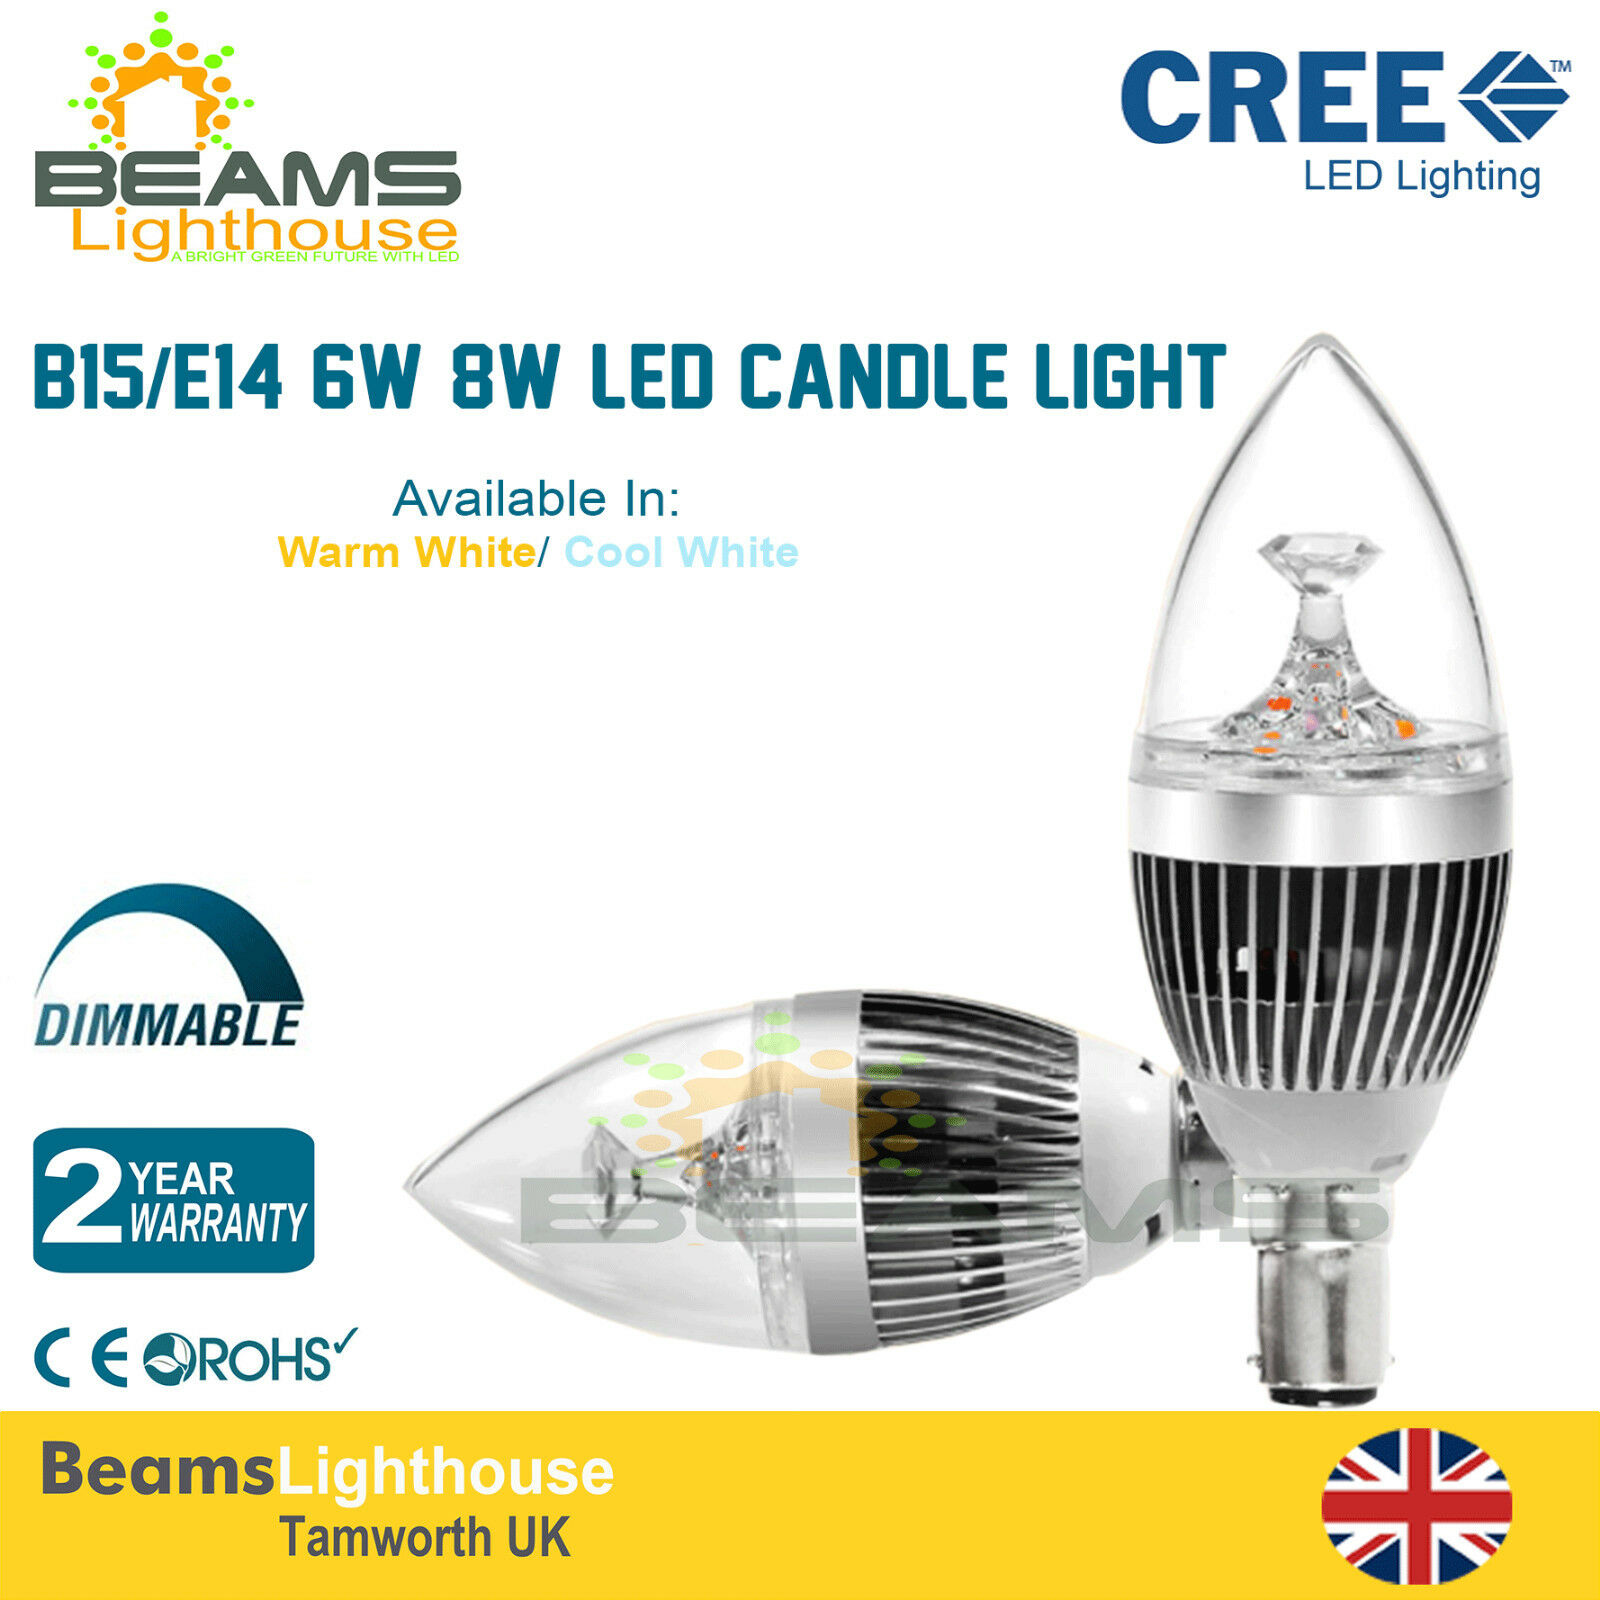 Dimmable E14 Small Edison Screw B15 Small Bayonet Cap LED Candle Light Lamp Bulb